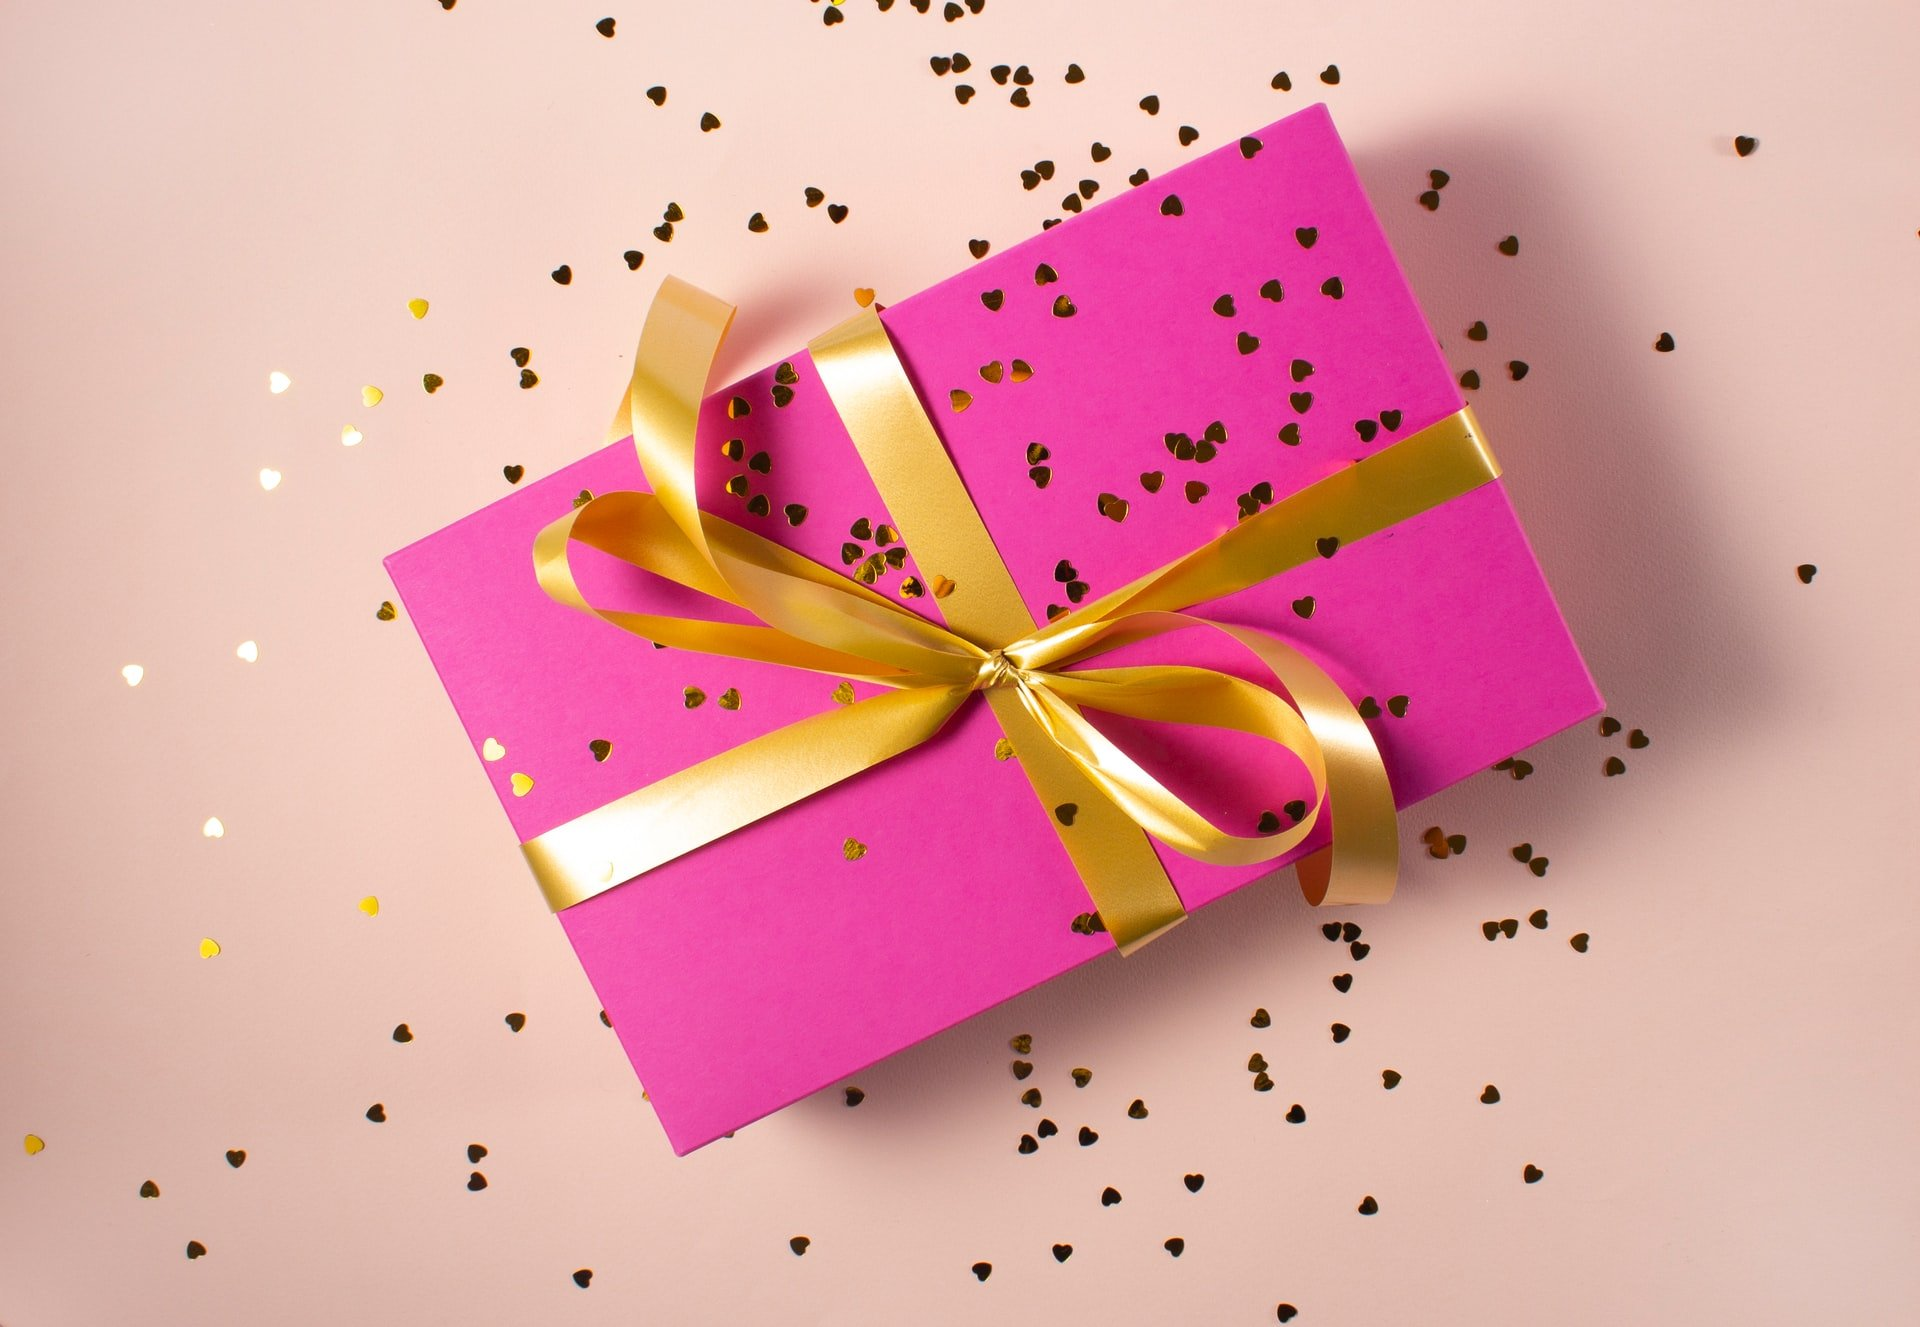 Gift wrapped in pink sheet with golden ribbon   Source: Unsplash